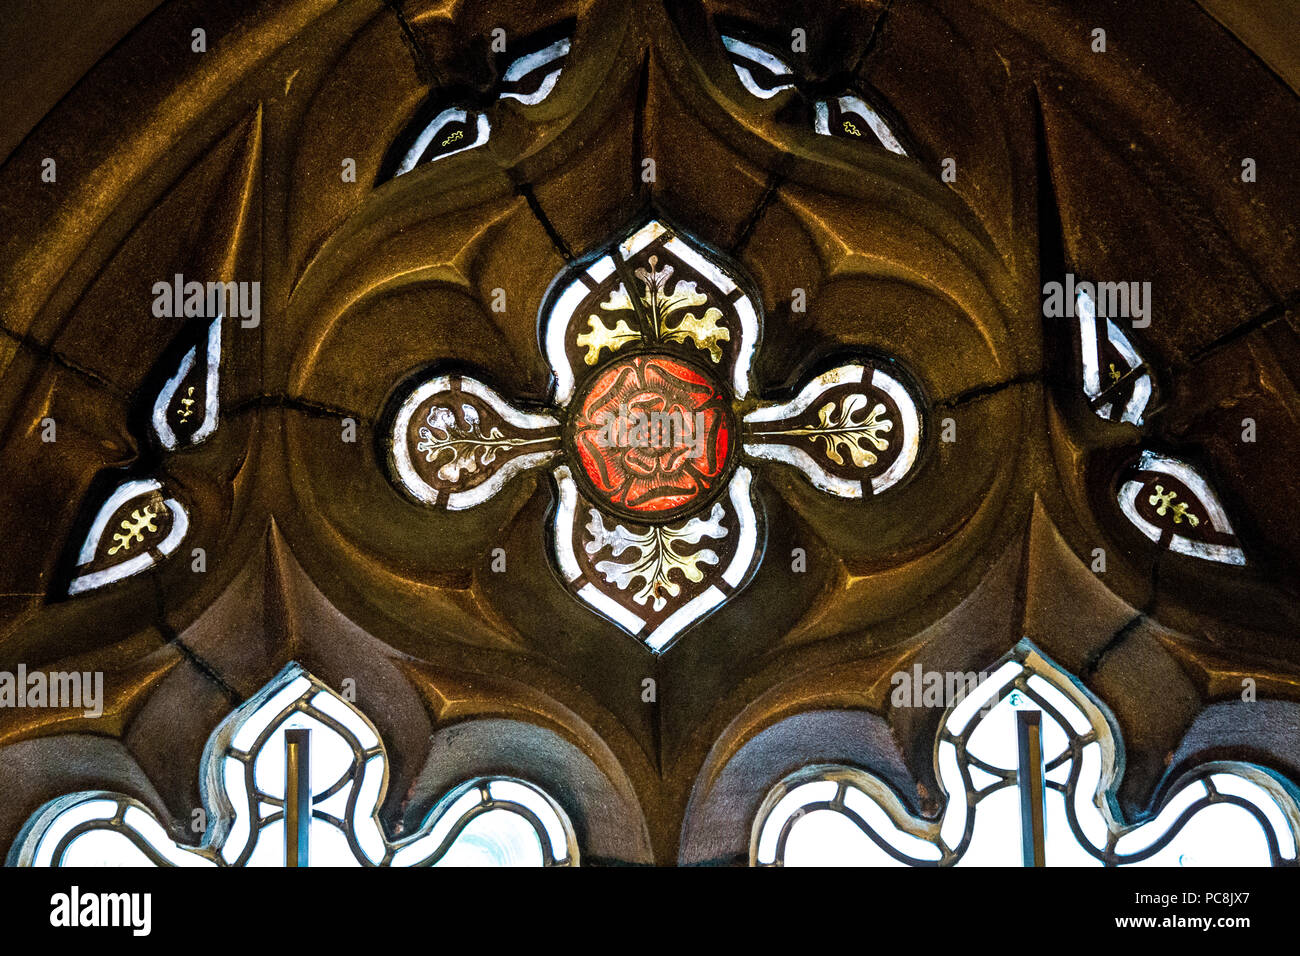 A red rose decorative stained glass window in a sandstone frame at John Rylands Library, Manchester, UK Stock Photo